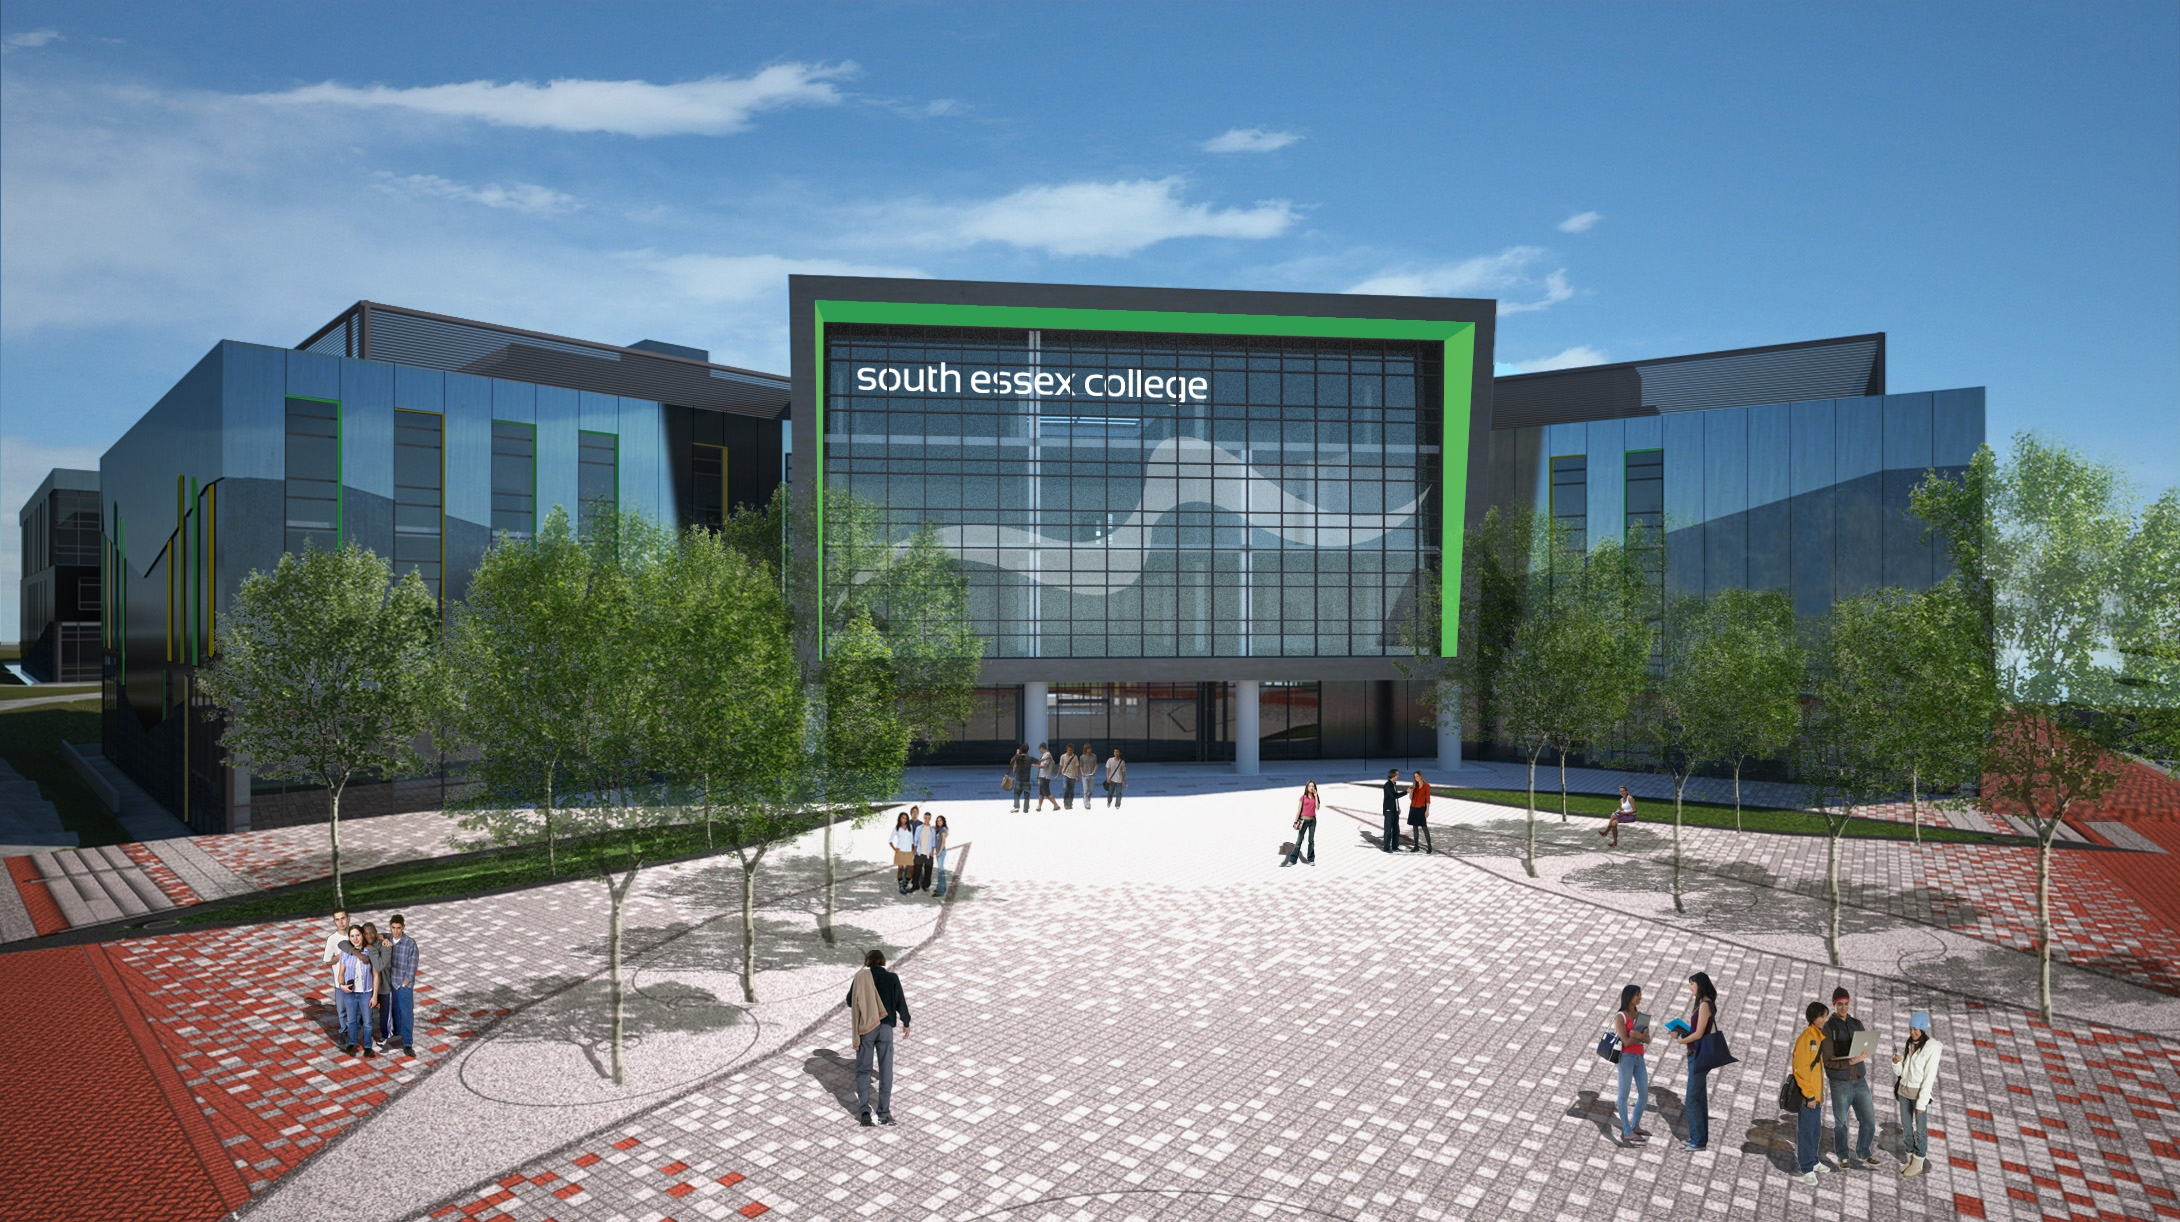 The £45million Thurrock Campus is beginning to take shape